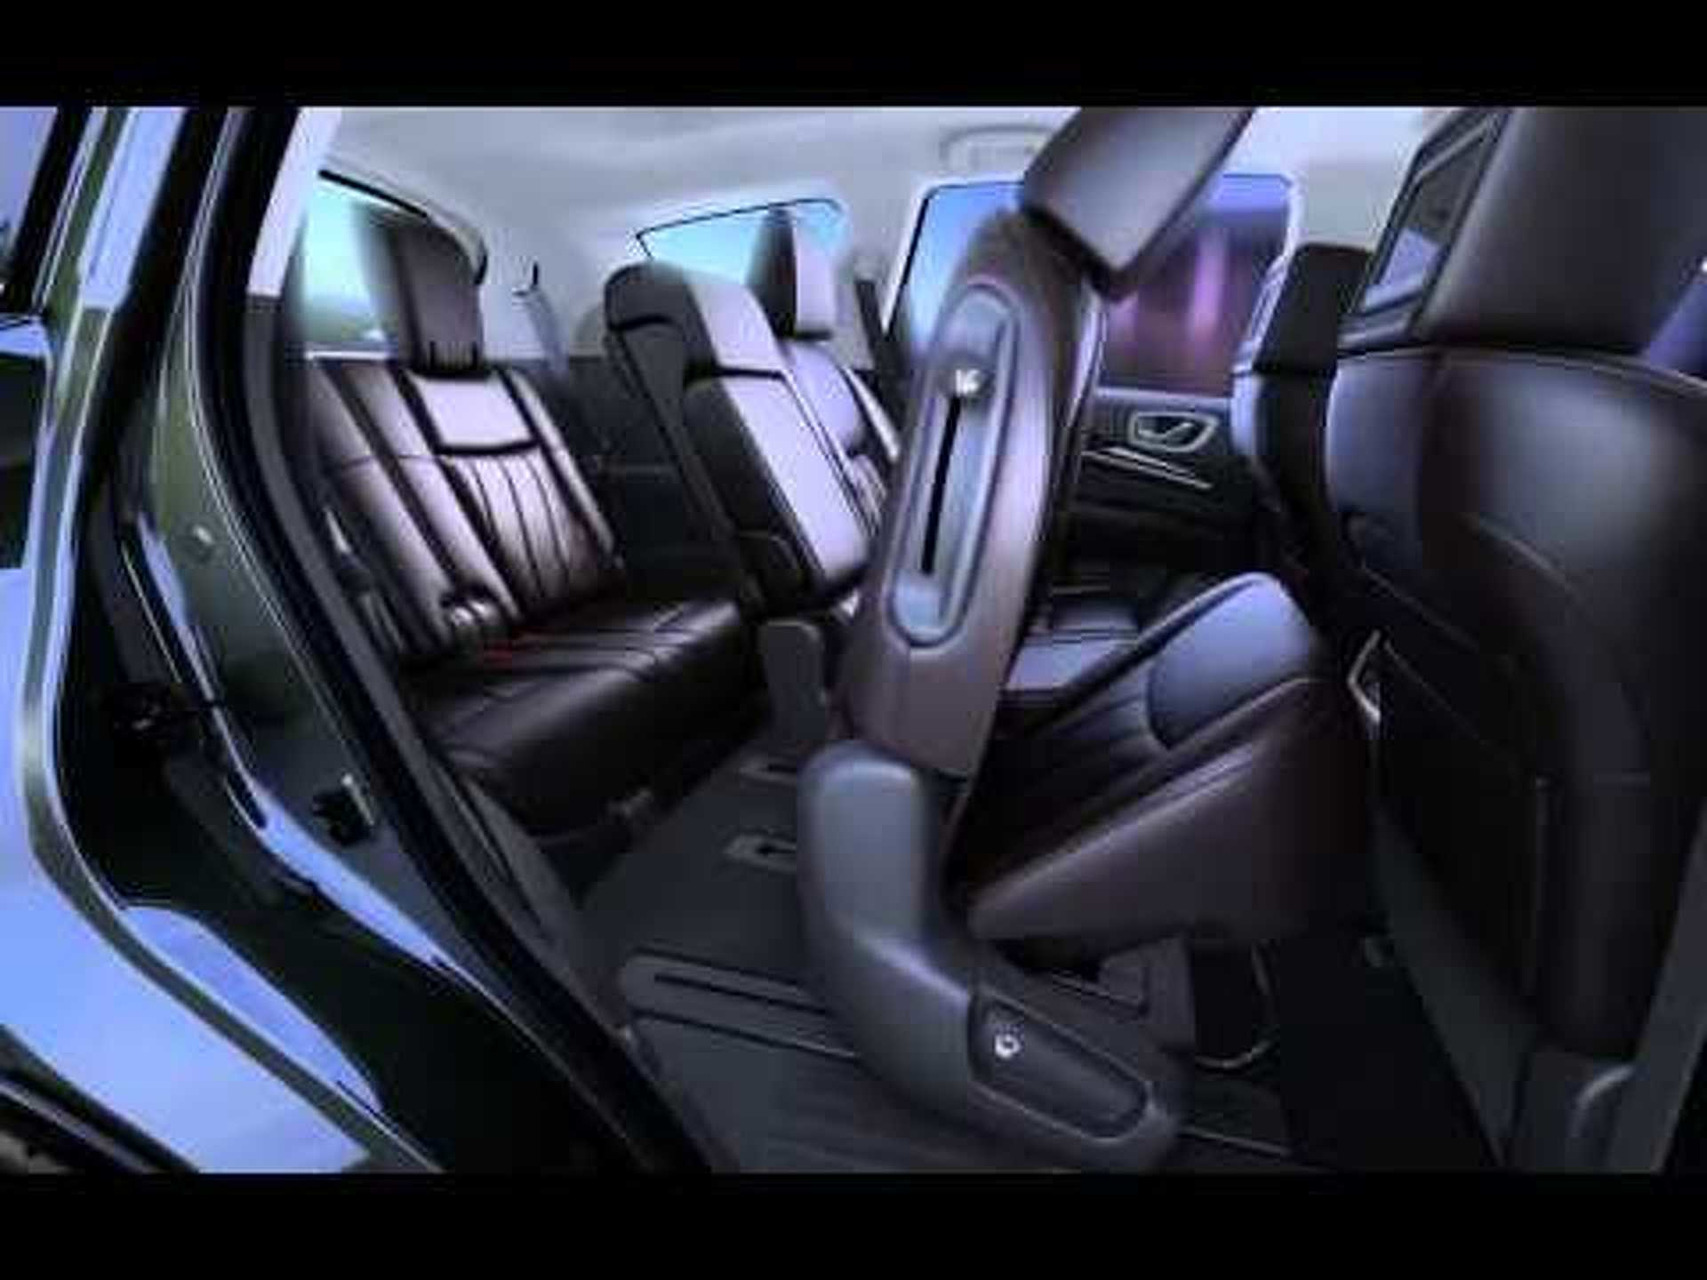 2013 Infiniti JX - 3rd Row Access